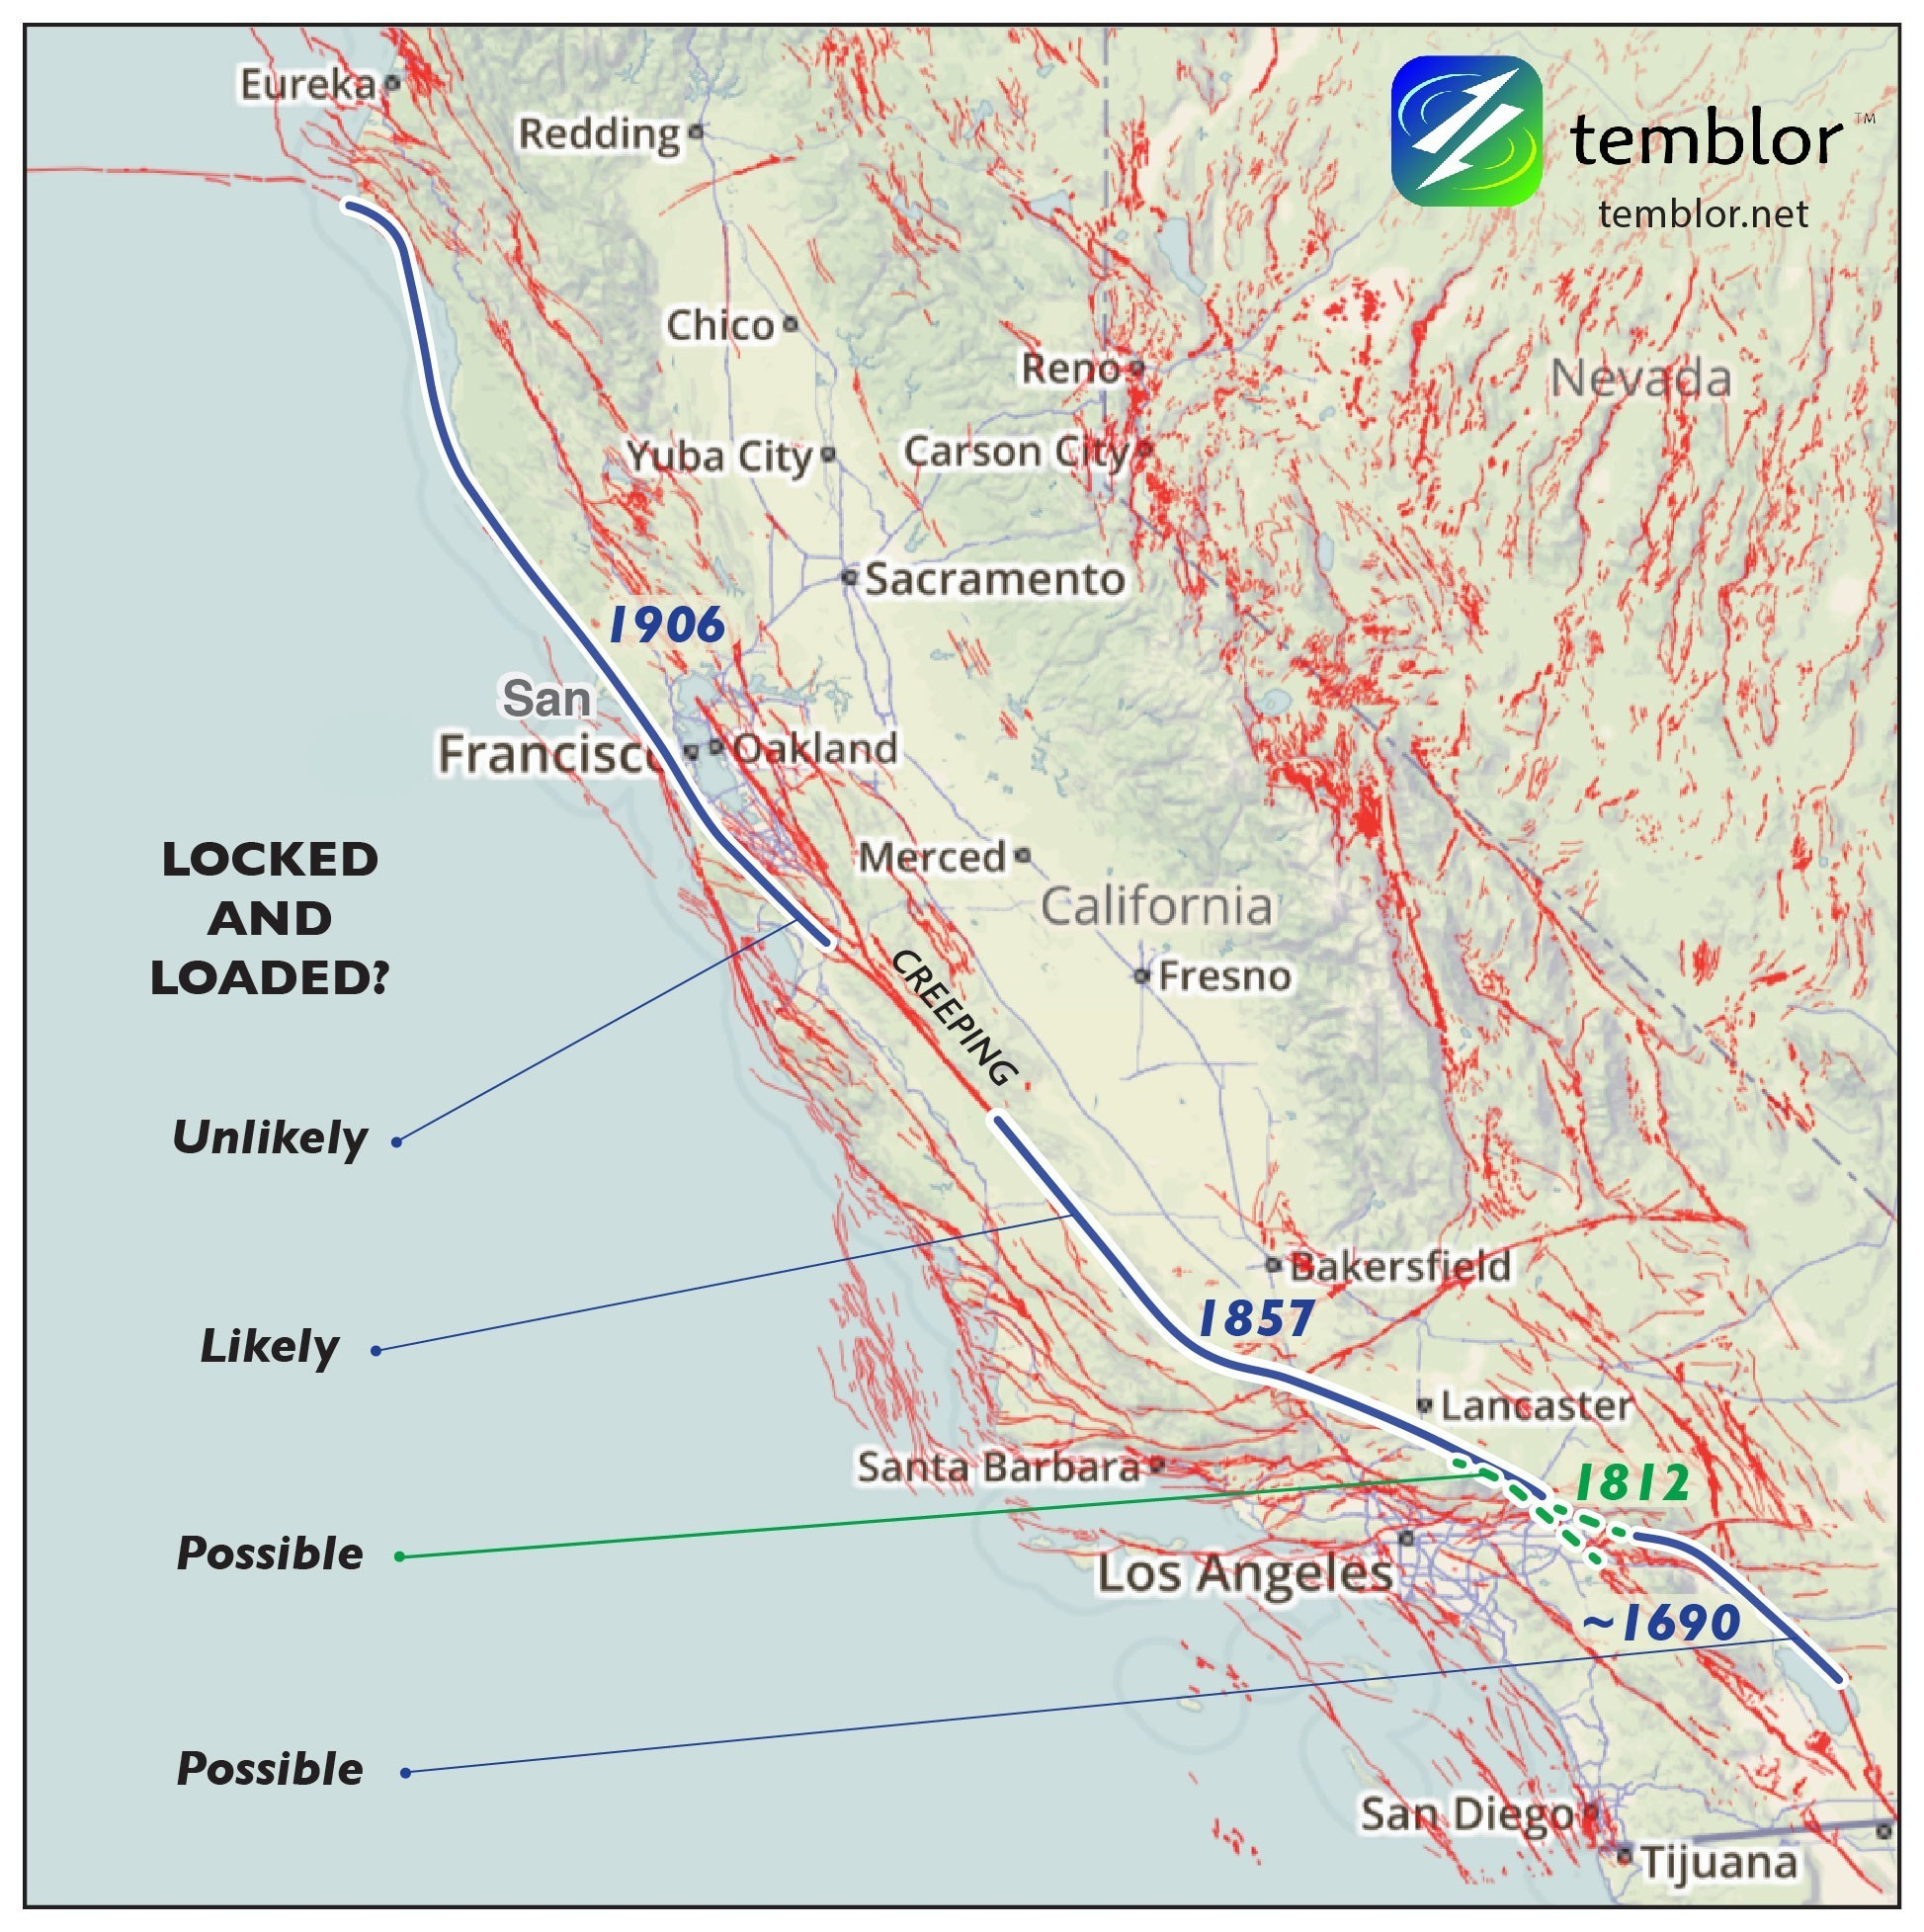 Us Map Earthquake Fault Lines Fault Lines Awesome Map San Andreas - Map Of The San Andreas Fault In Southern California